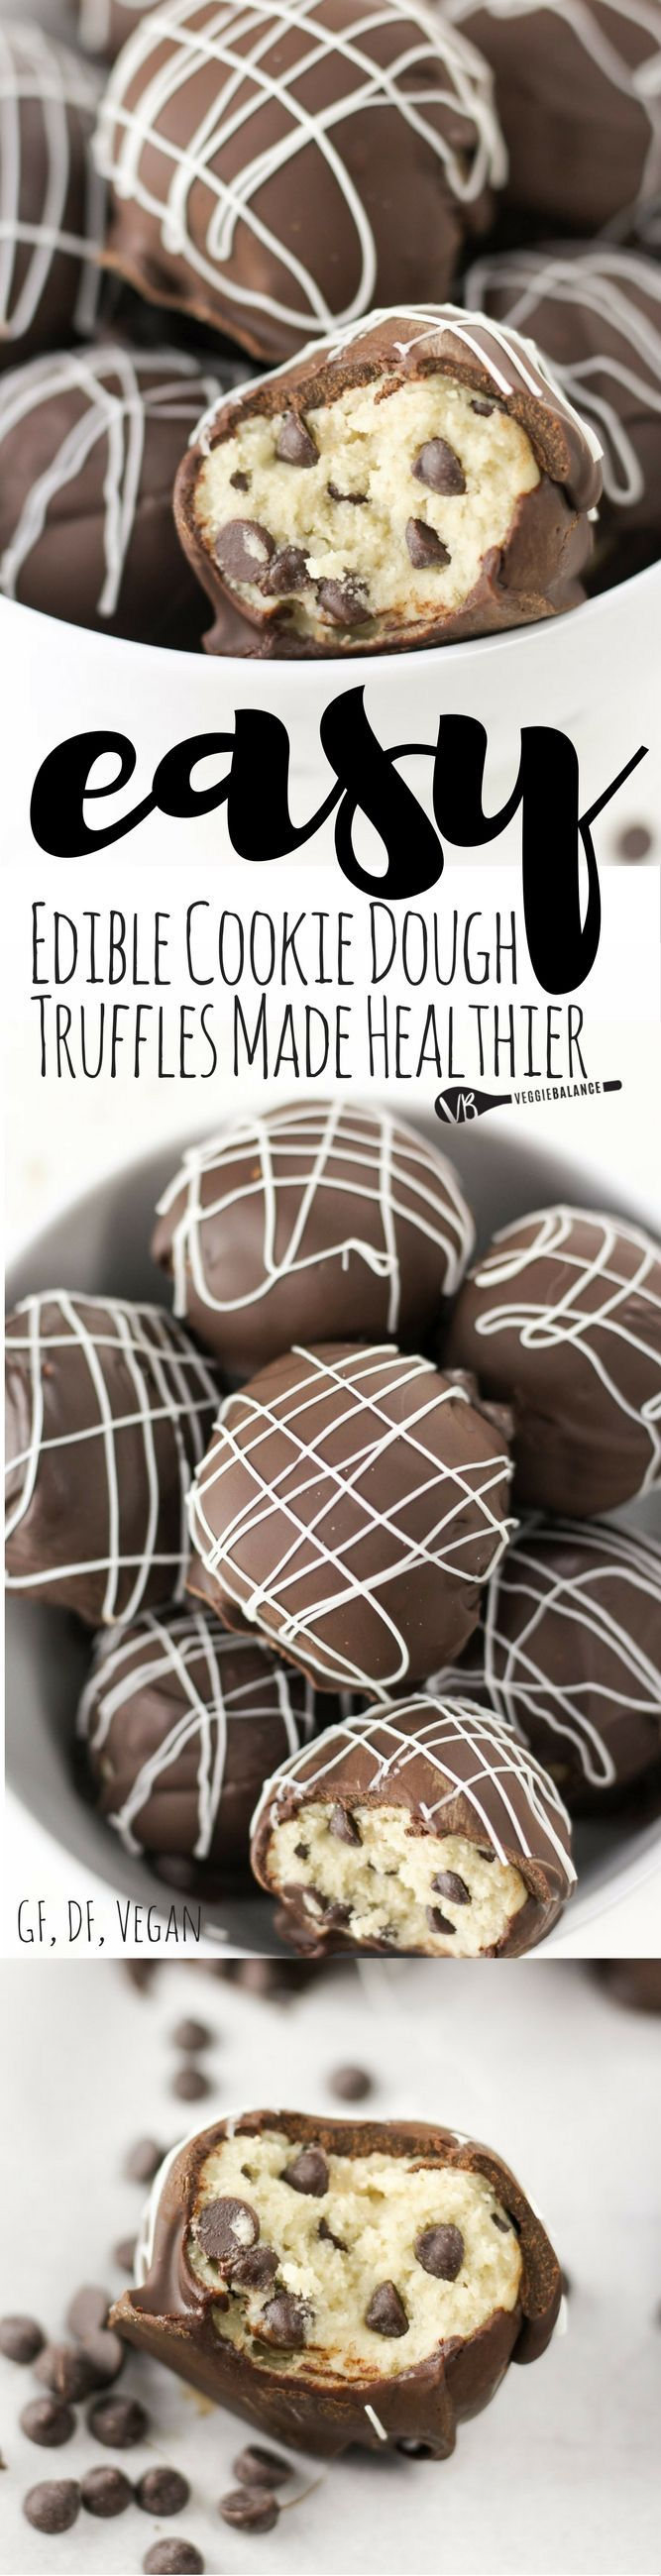 Edible Cookie Dough Truffles recipe and How To Make them Healthy, Gluten-Free, Dairy-Free and Lower-sugar! Made edible and egg-less with only 7 simple ingredients!